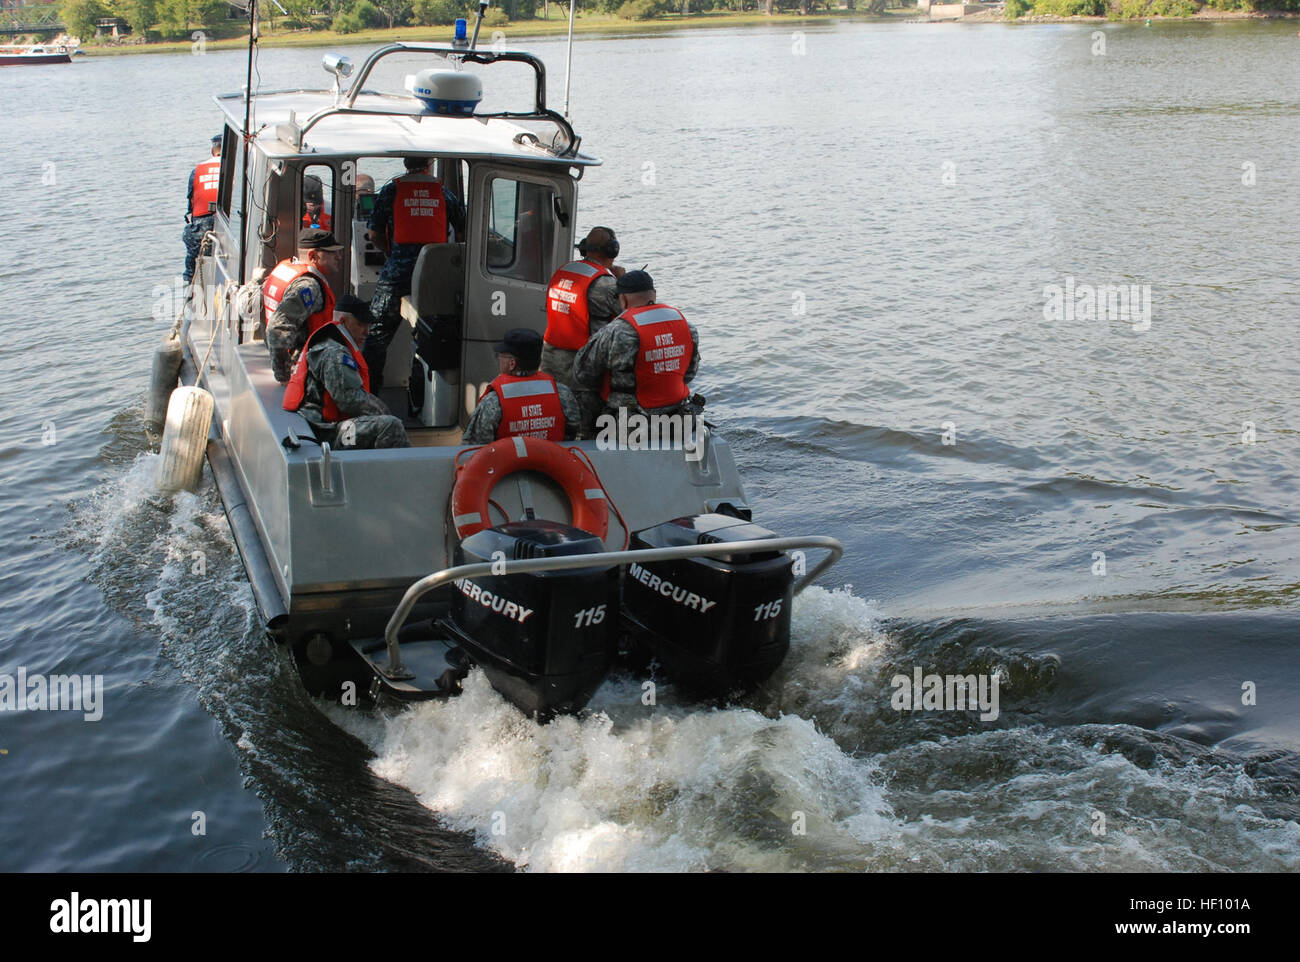 New York Naval Militia Patrol Boat 230 underway with a New York Guard (state defense force) Search and Rescue Team - Stock Image